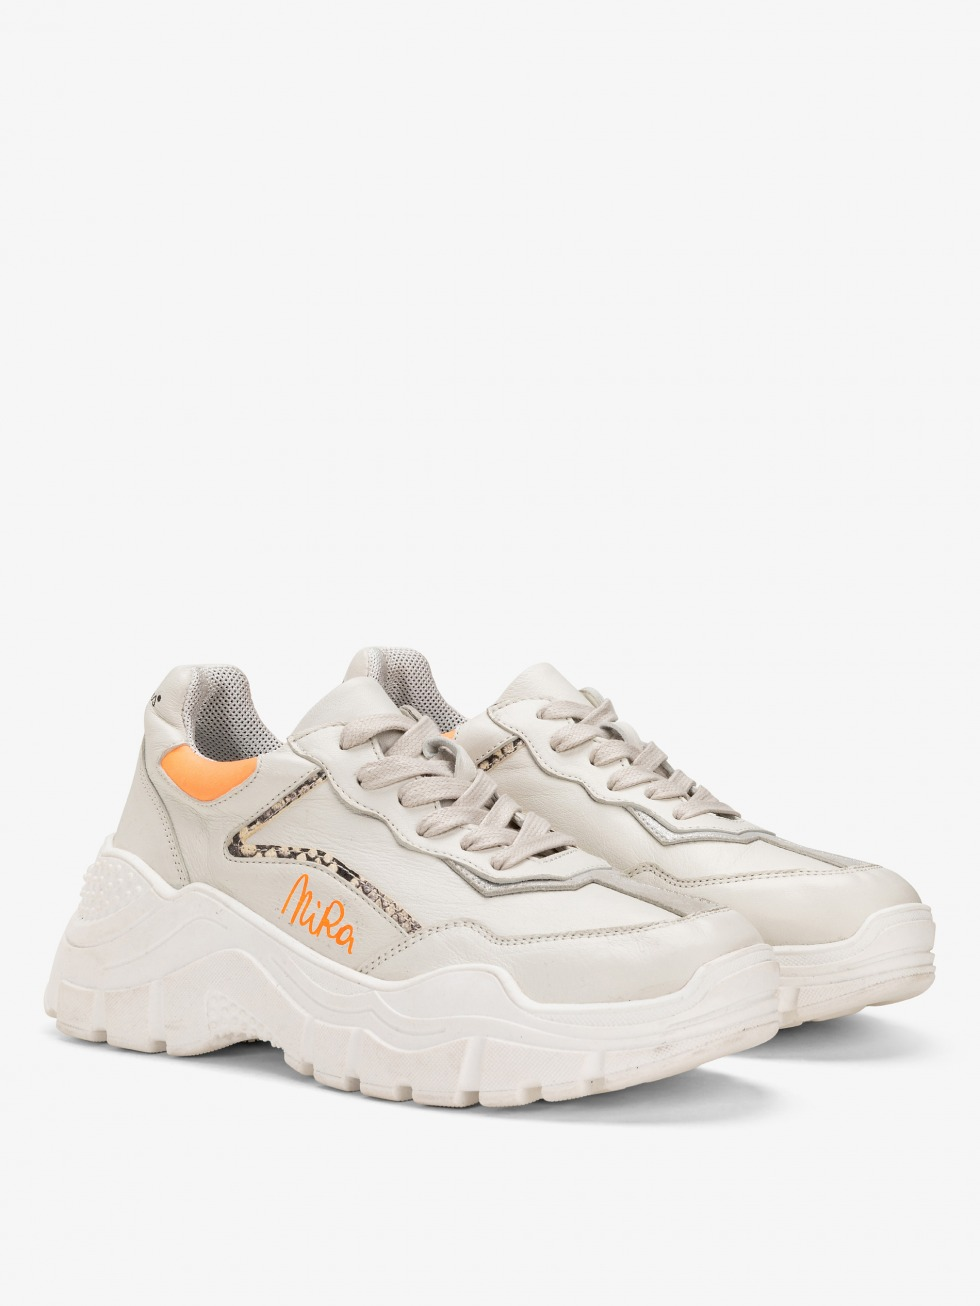 Aviations Chunky Sneakers - Nira Active